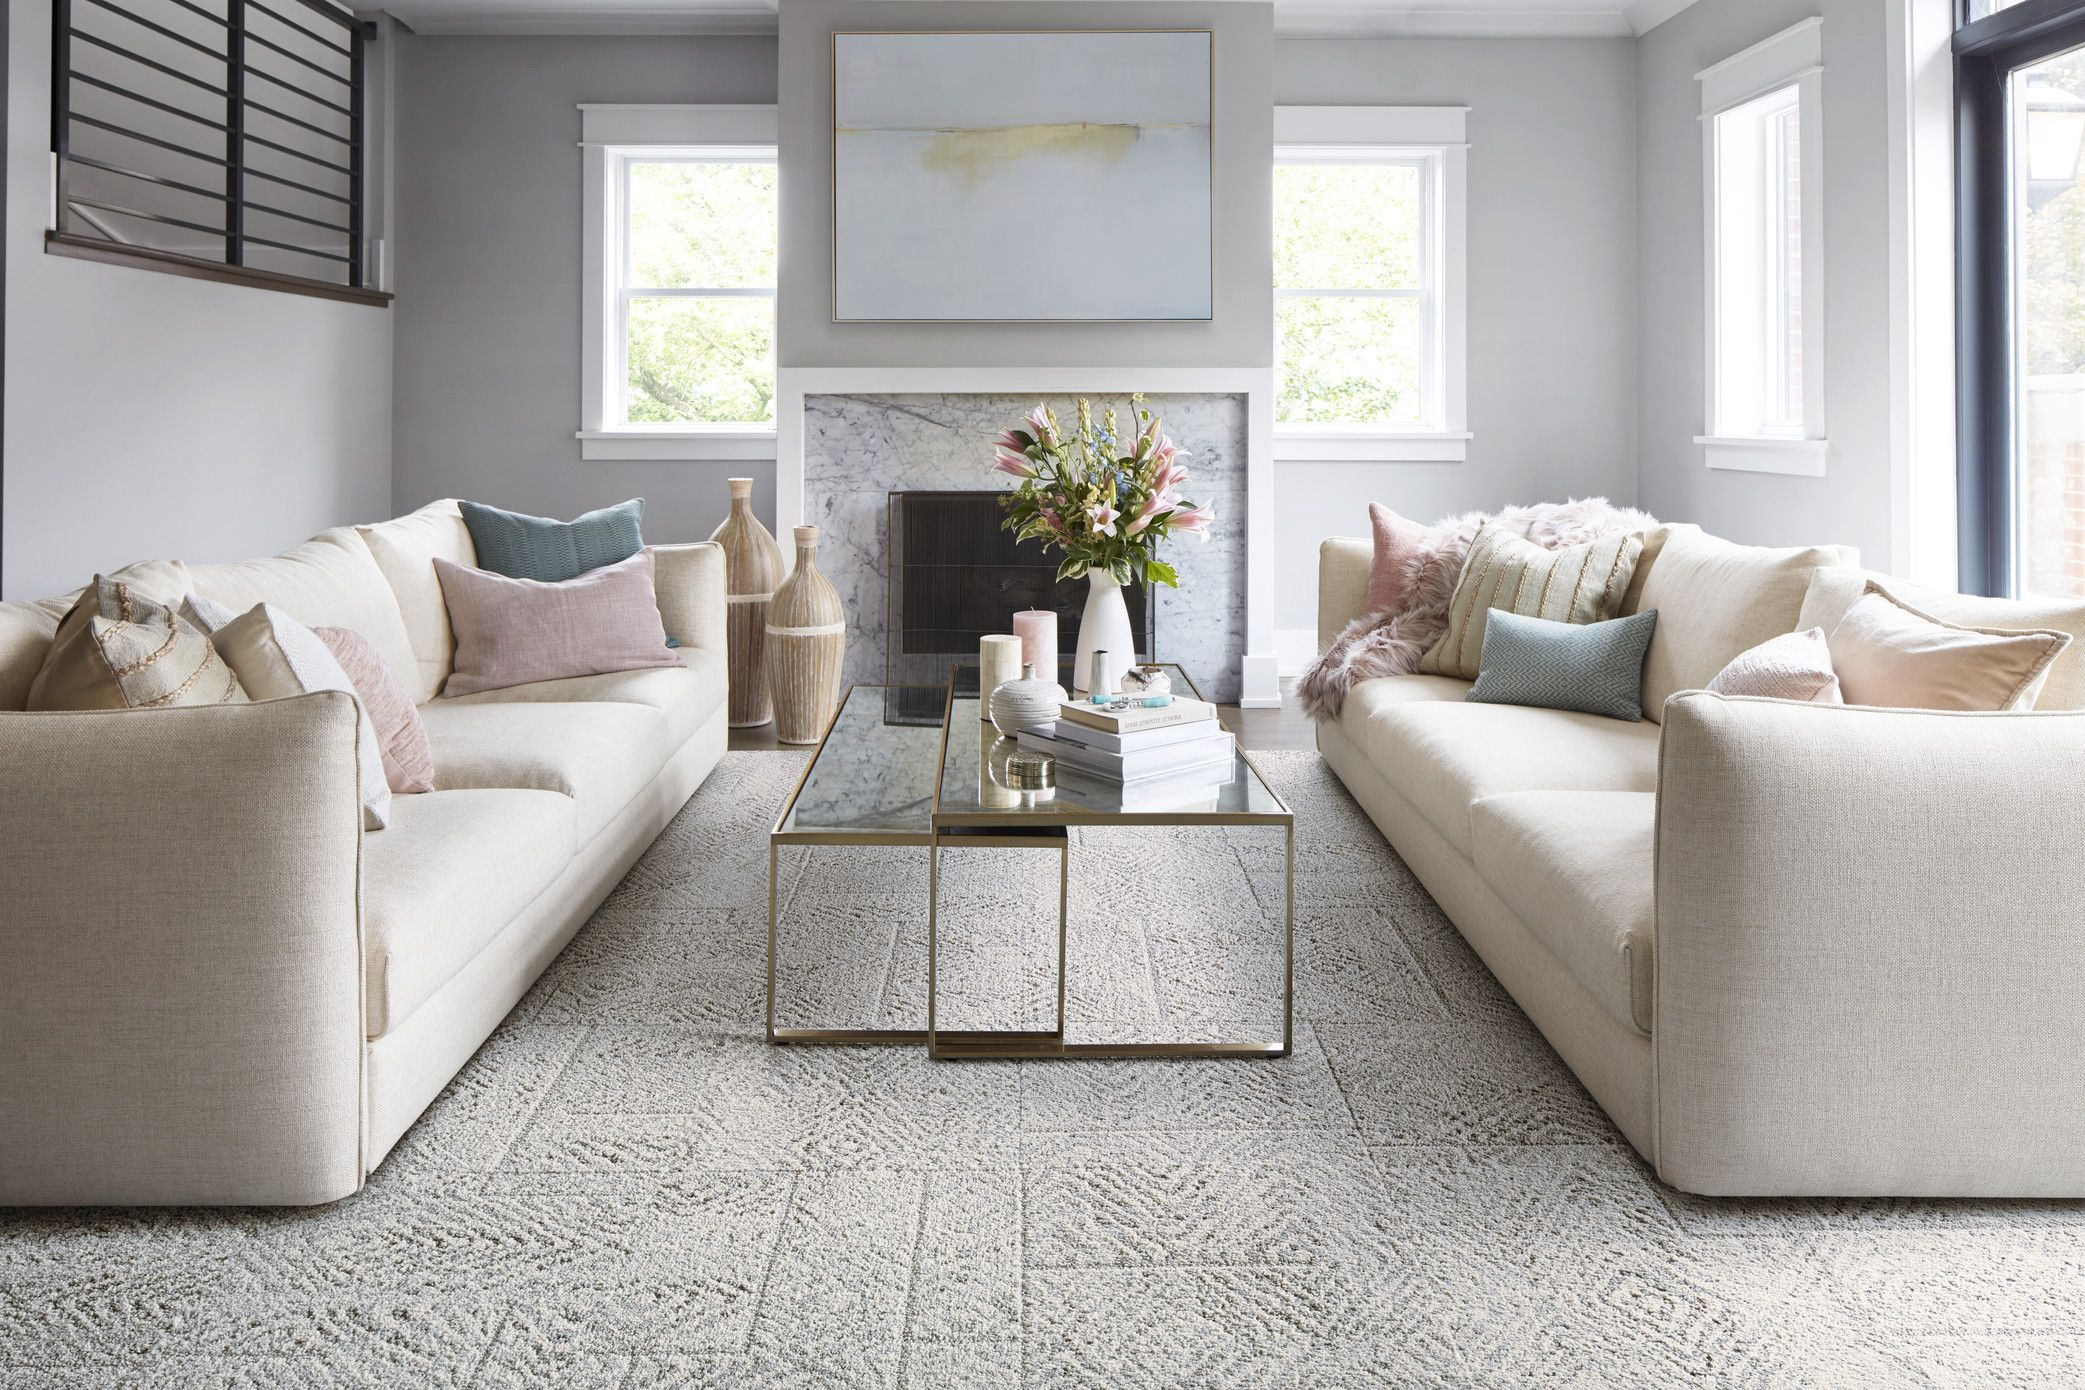 Pin On Living Room Inspiration Flor